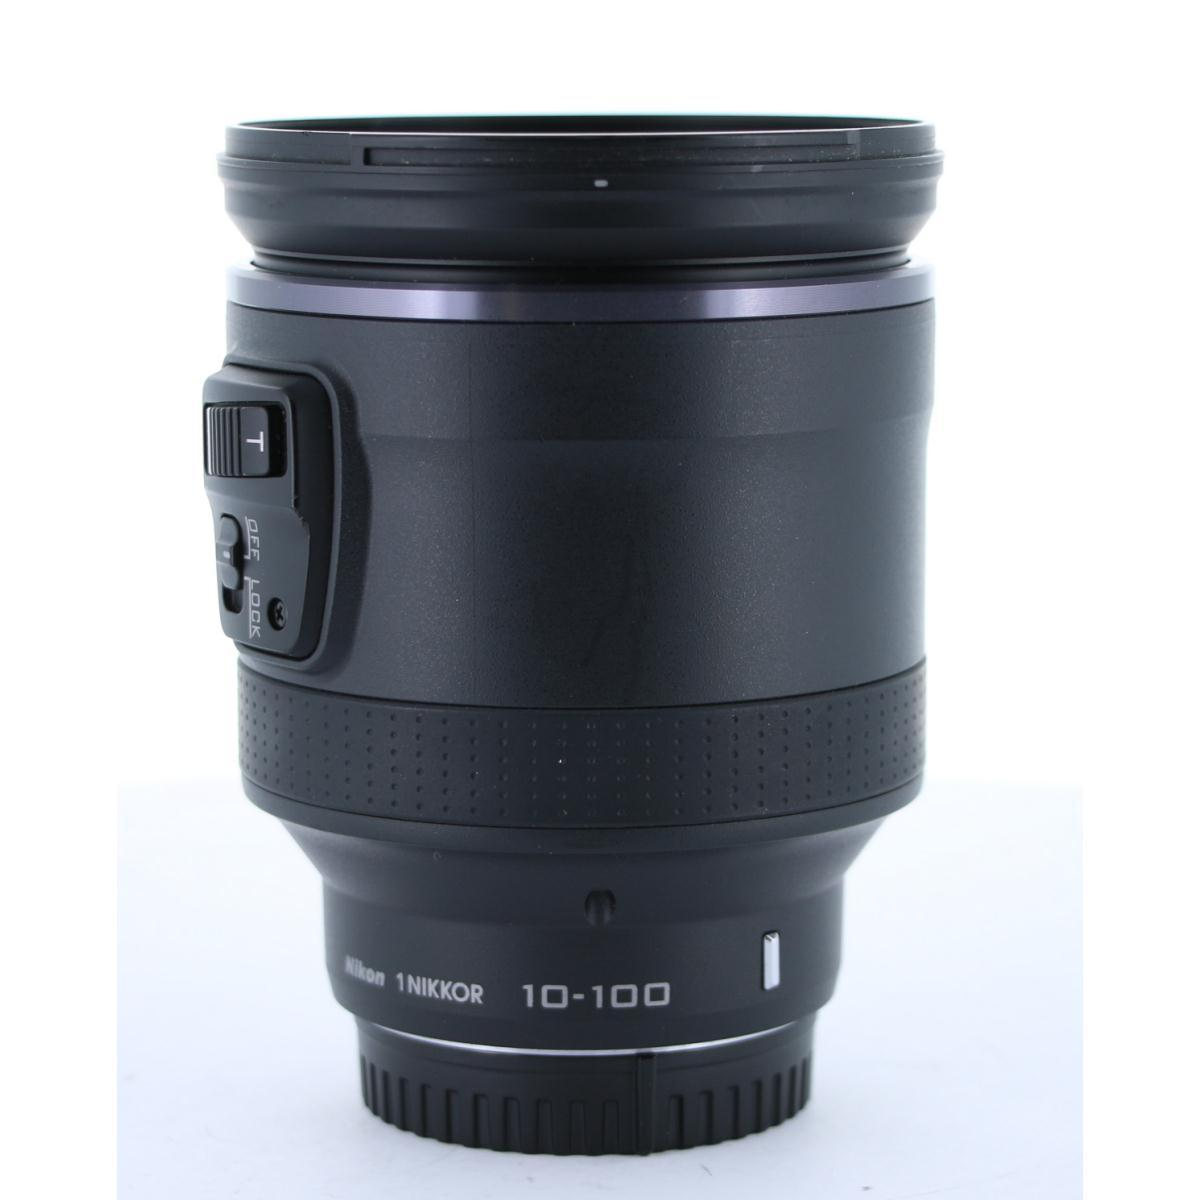 NIKON 10-100mm F4.5-5.6PD-ZOOM【中古】